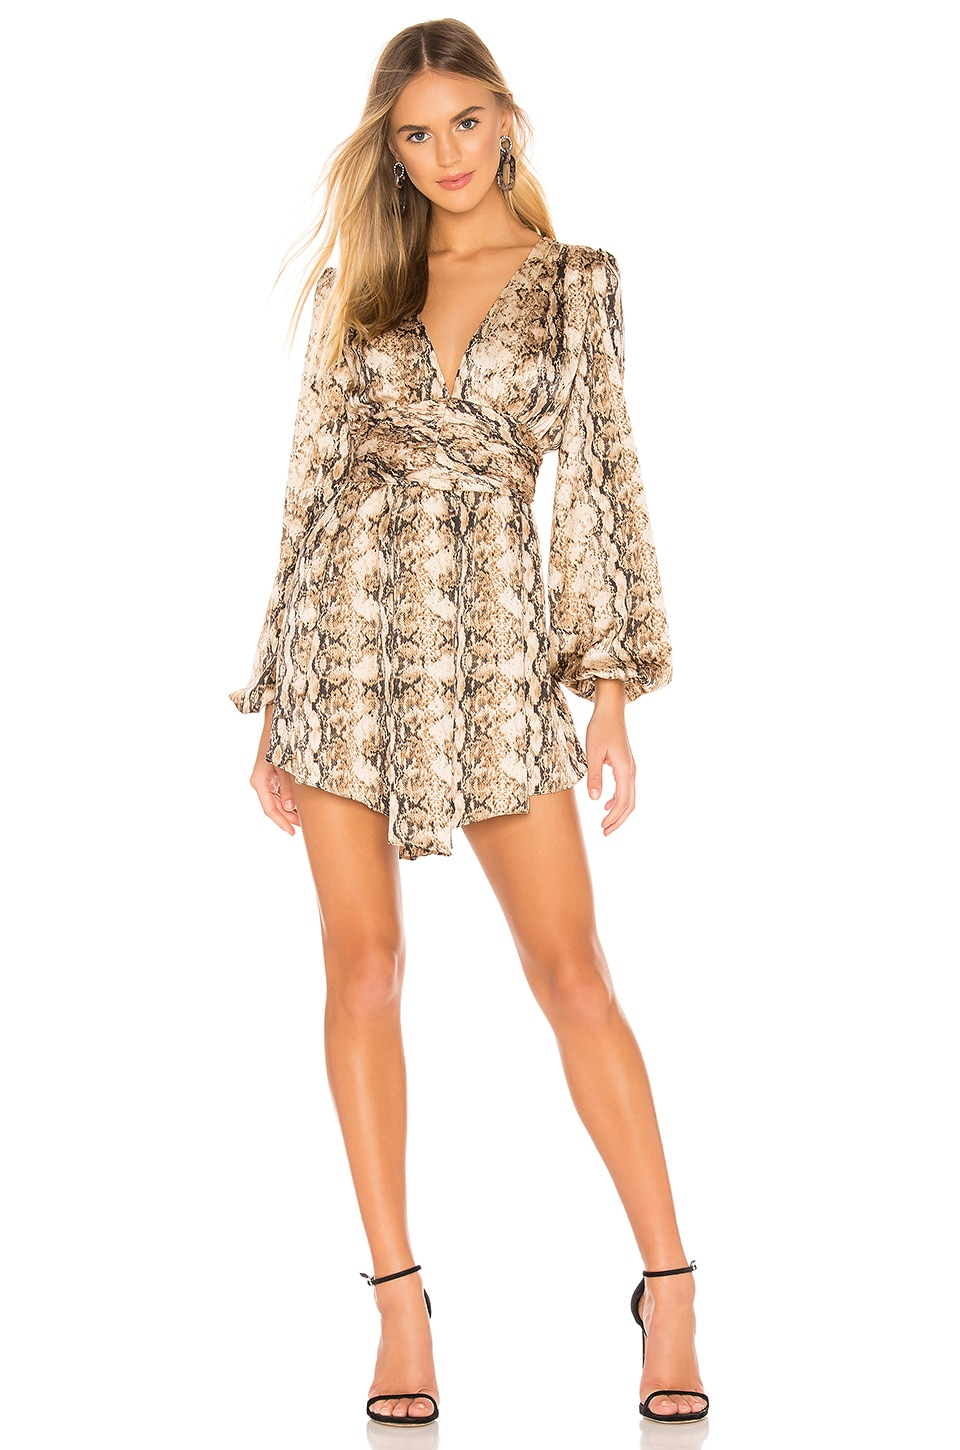 Ronny Kobo Orzora Dress in Nude Multi